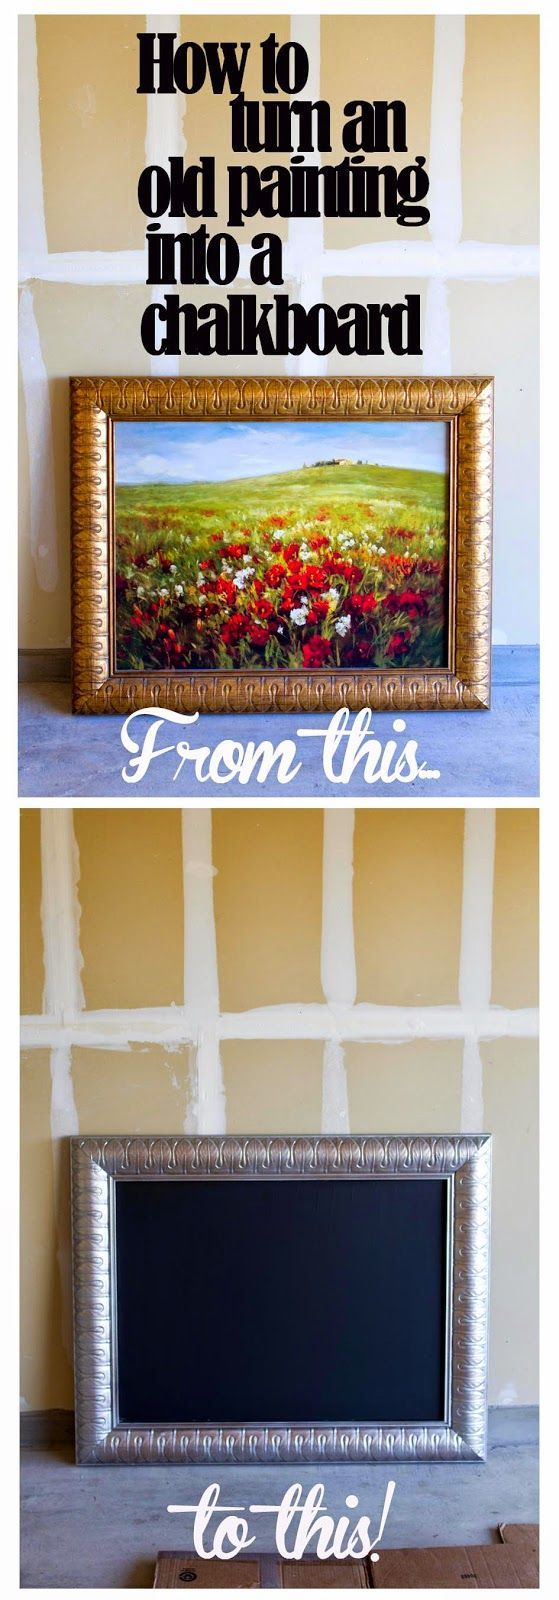 14 creative uses for old picture frames picture frame chalkboard 14 creative uses for old picture frames picture frame chalkboard framed chalkboard and chalkboards jeuxipadfo Choice Image